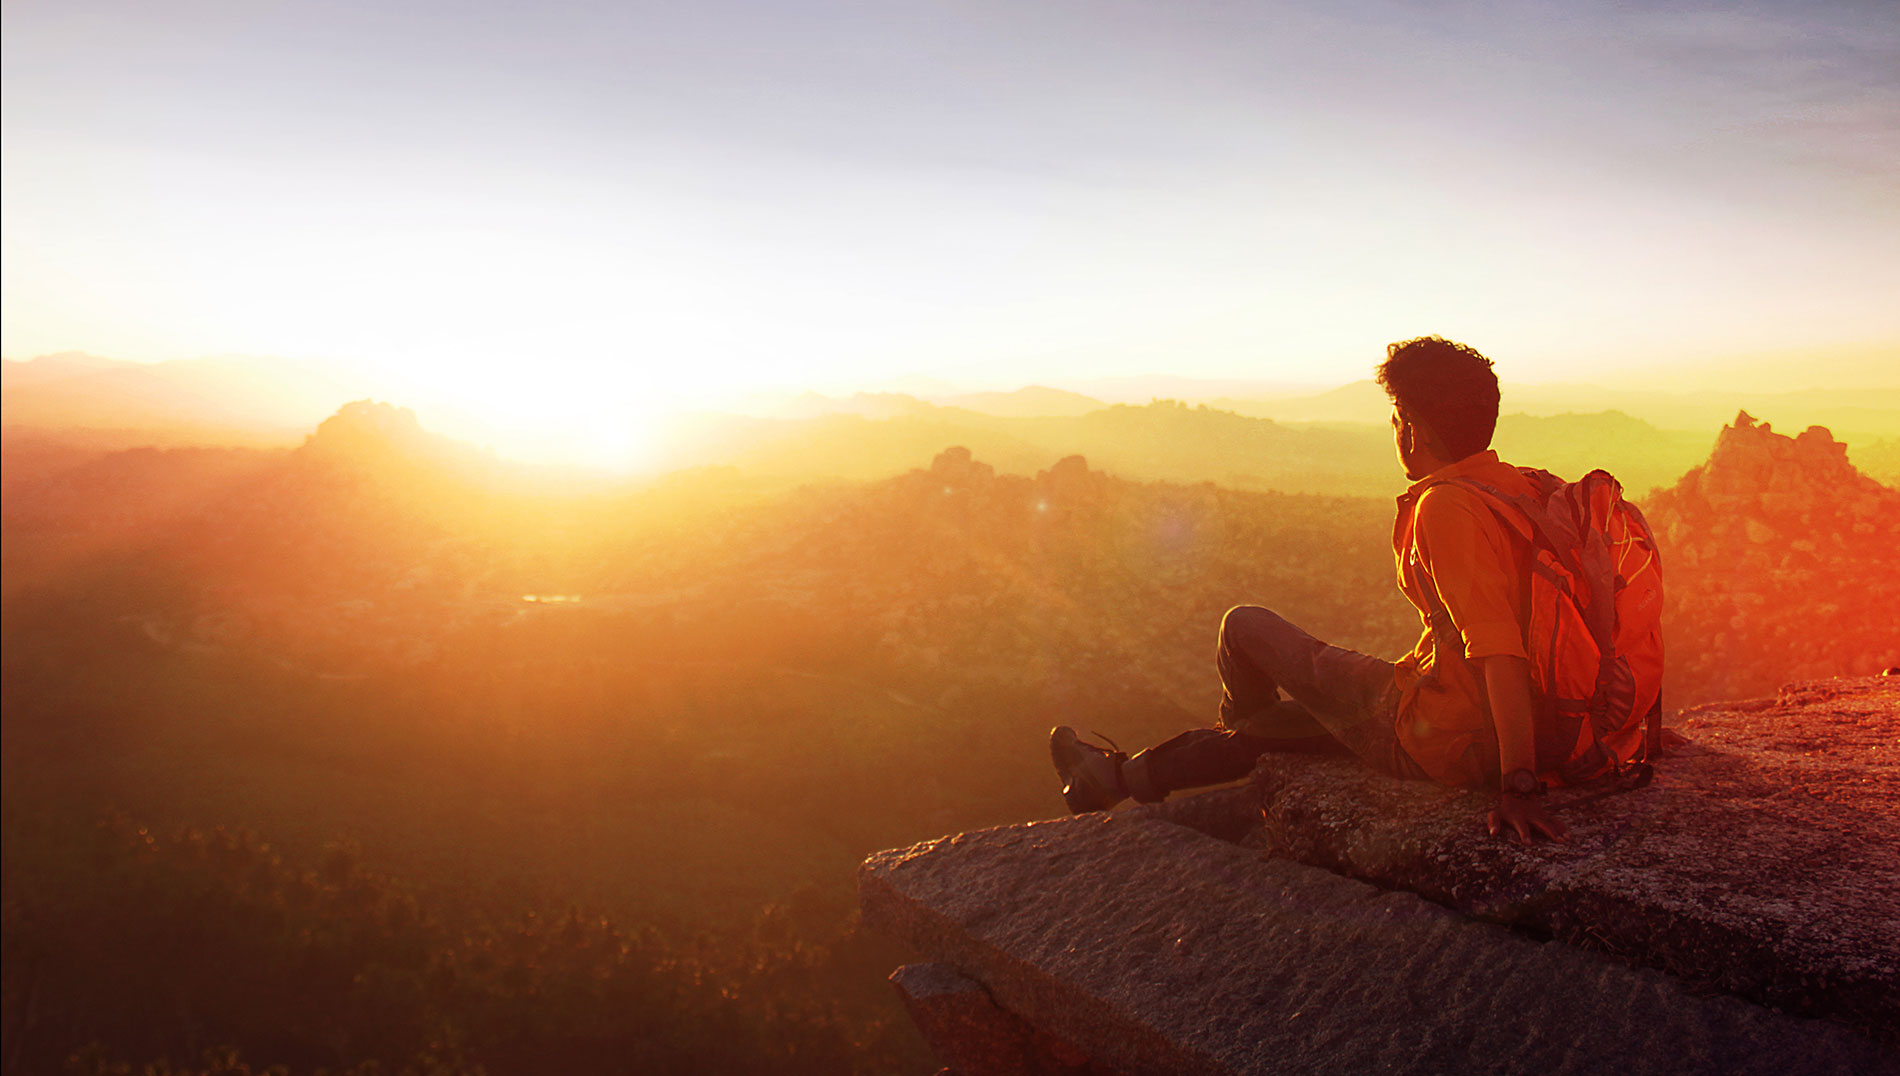 A man sitting on the top of a mountain serenely looking at a beautiful sunrise.